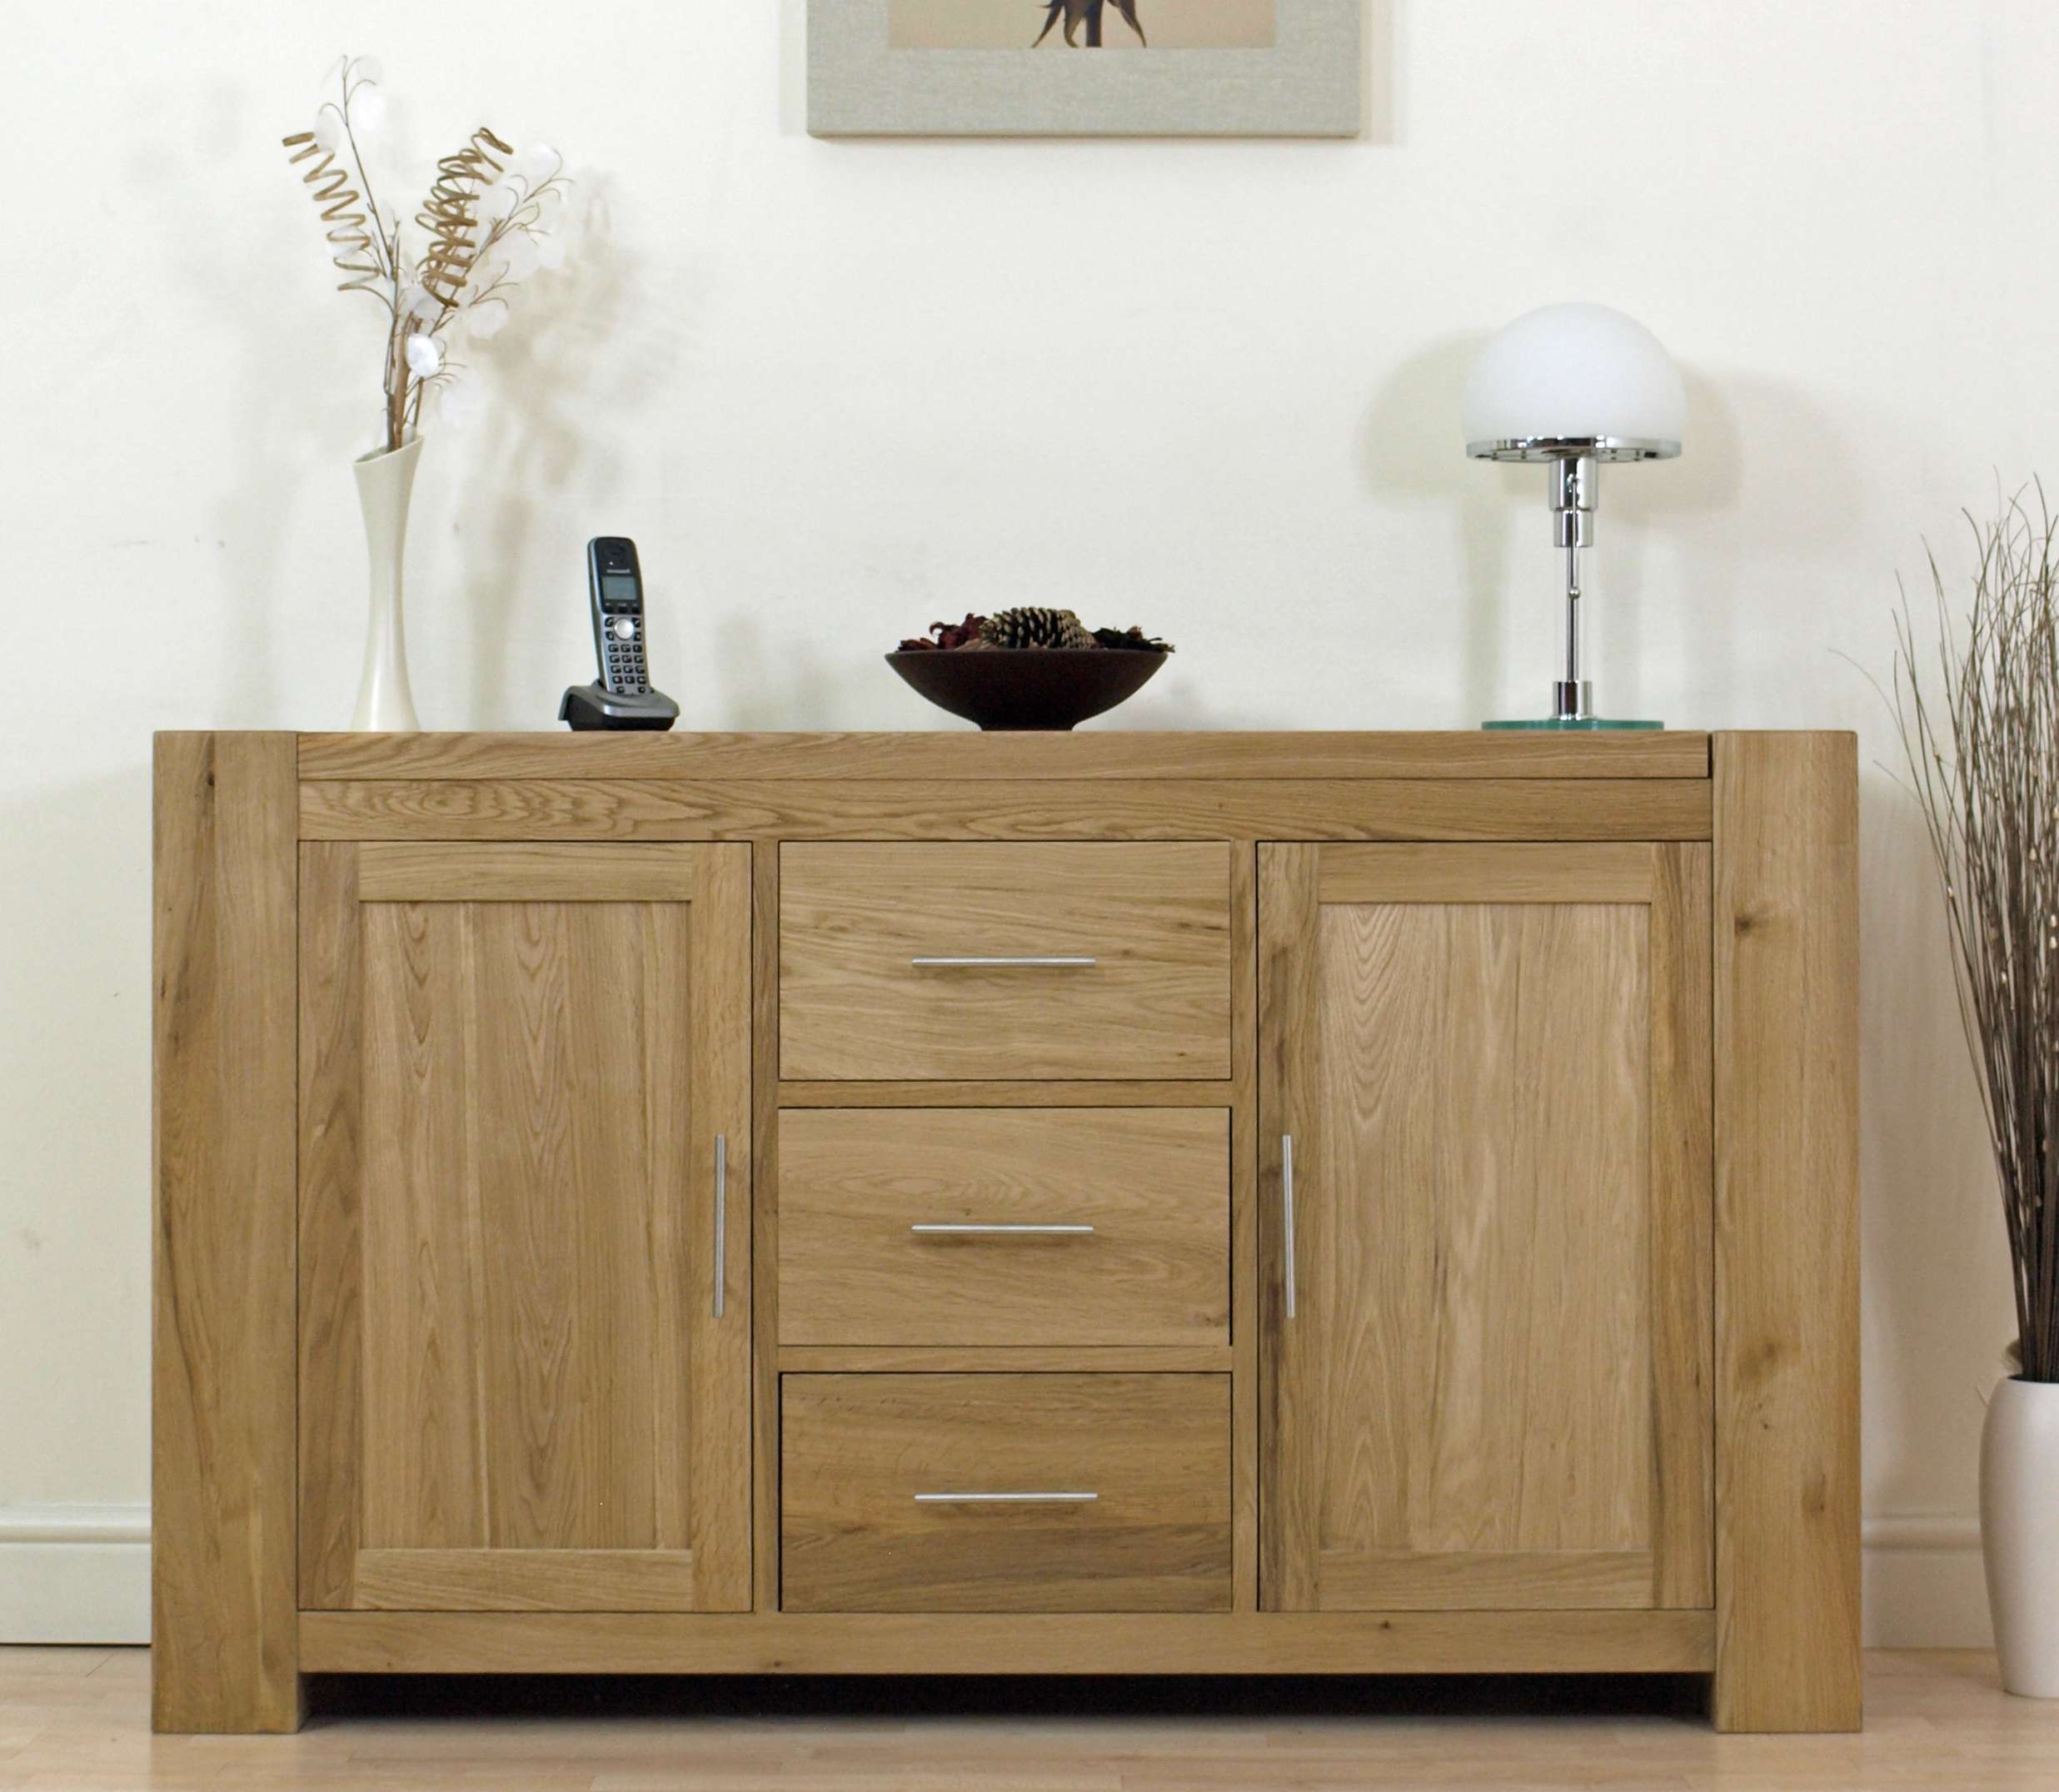 Solid Oak Sideboard Is Your First Choice Living Room Furniture – Hgnv With Regard To Furniture Sideboards (View 18 of 20)